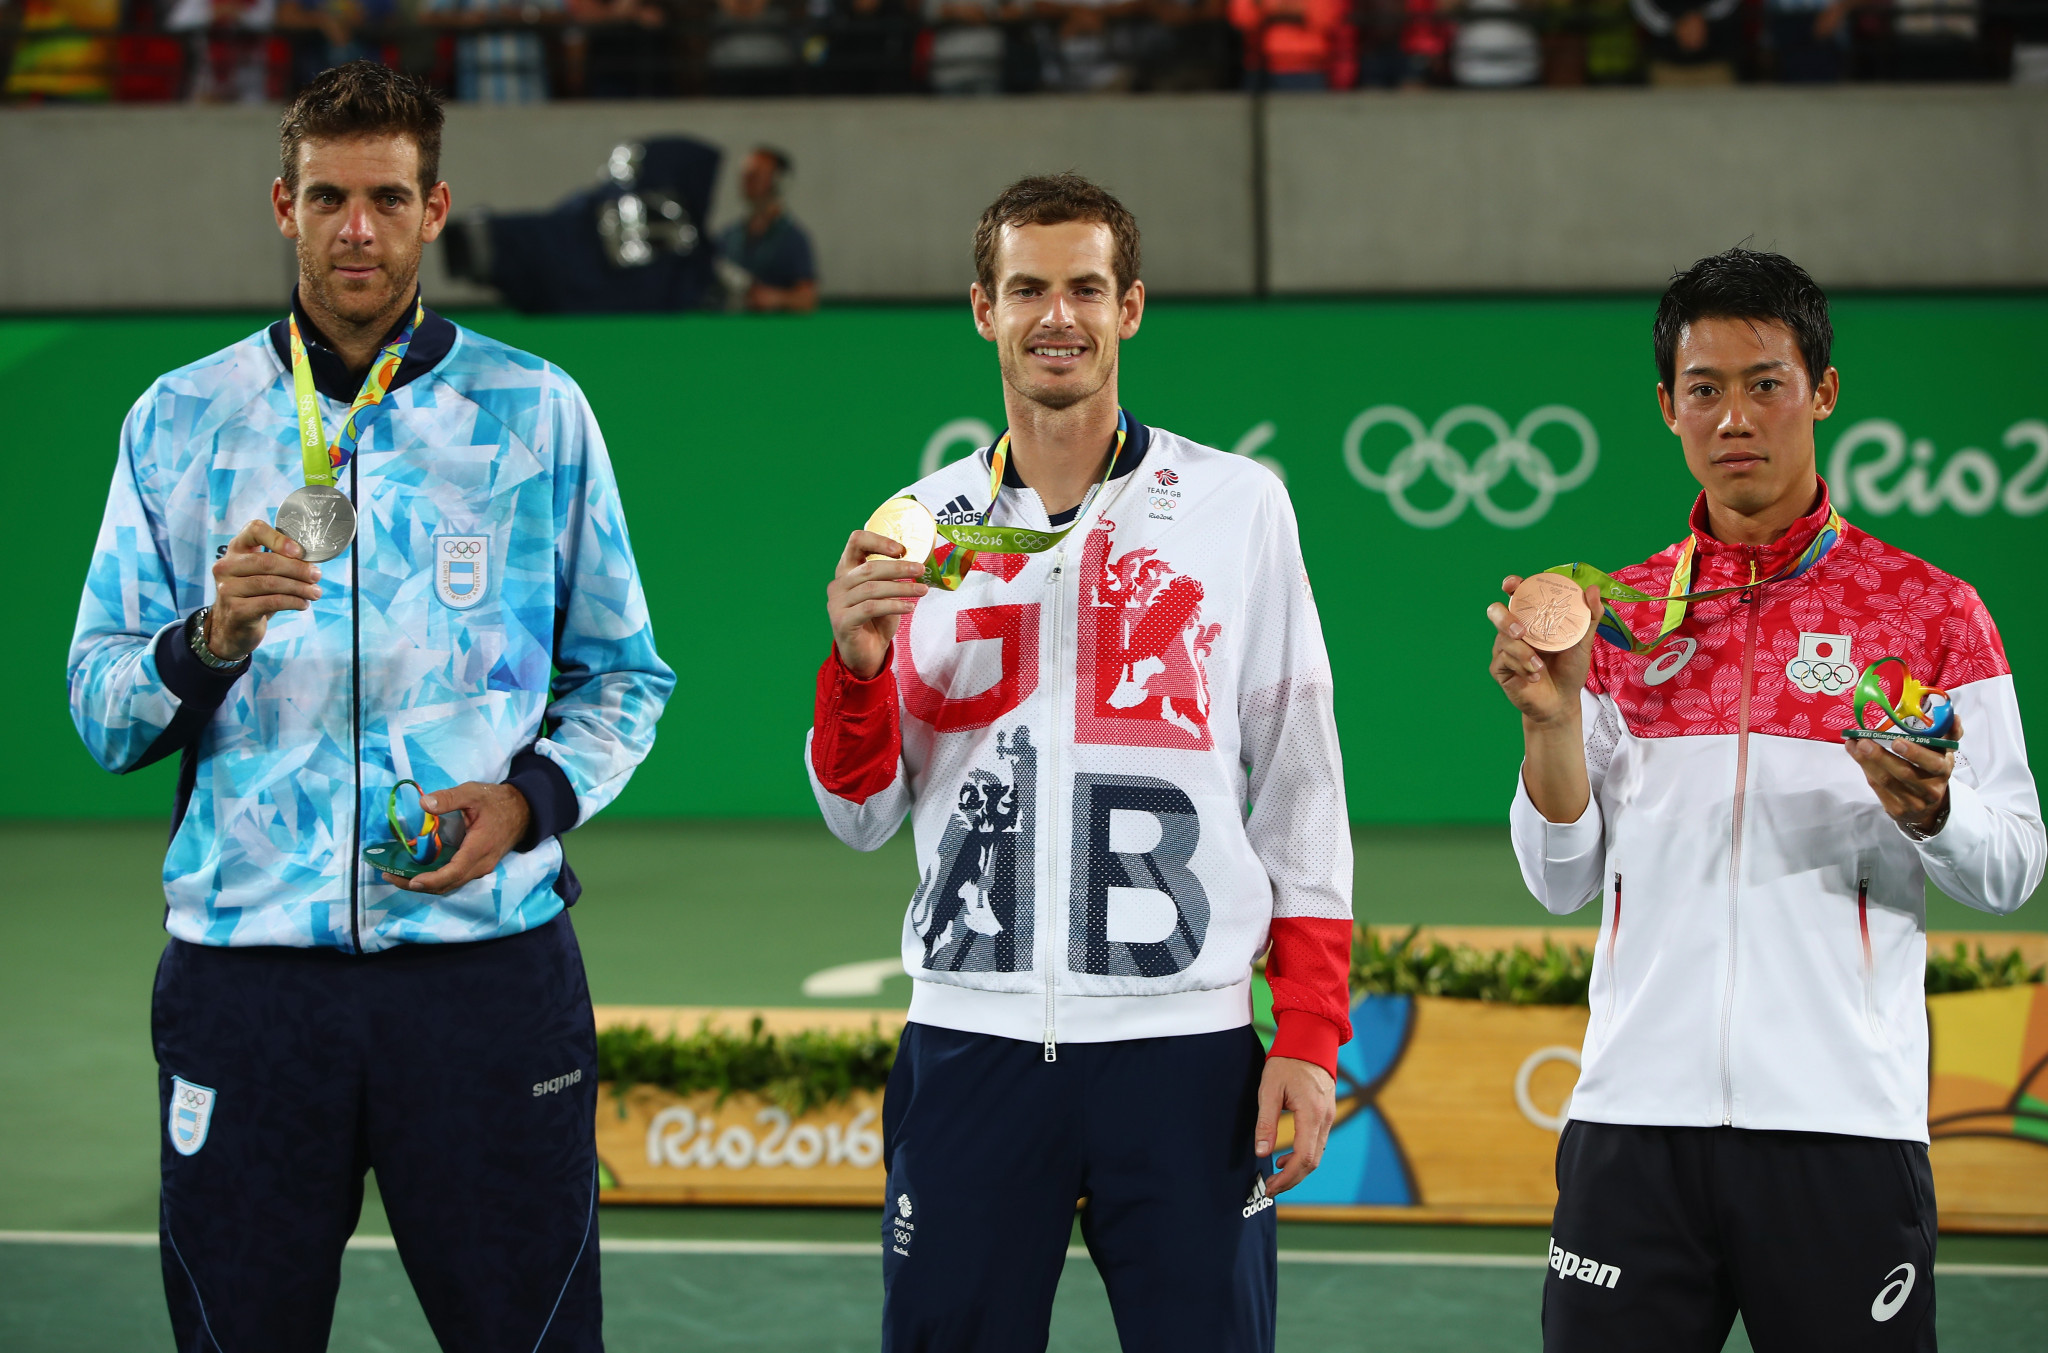 Andy Murray won the men's singles gold medal at London 2012 and Rio 2016 ©Getty Images